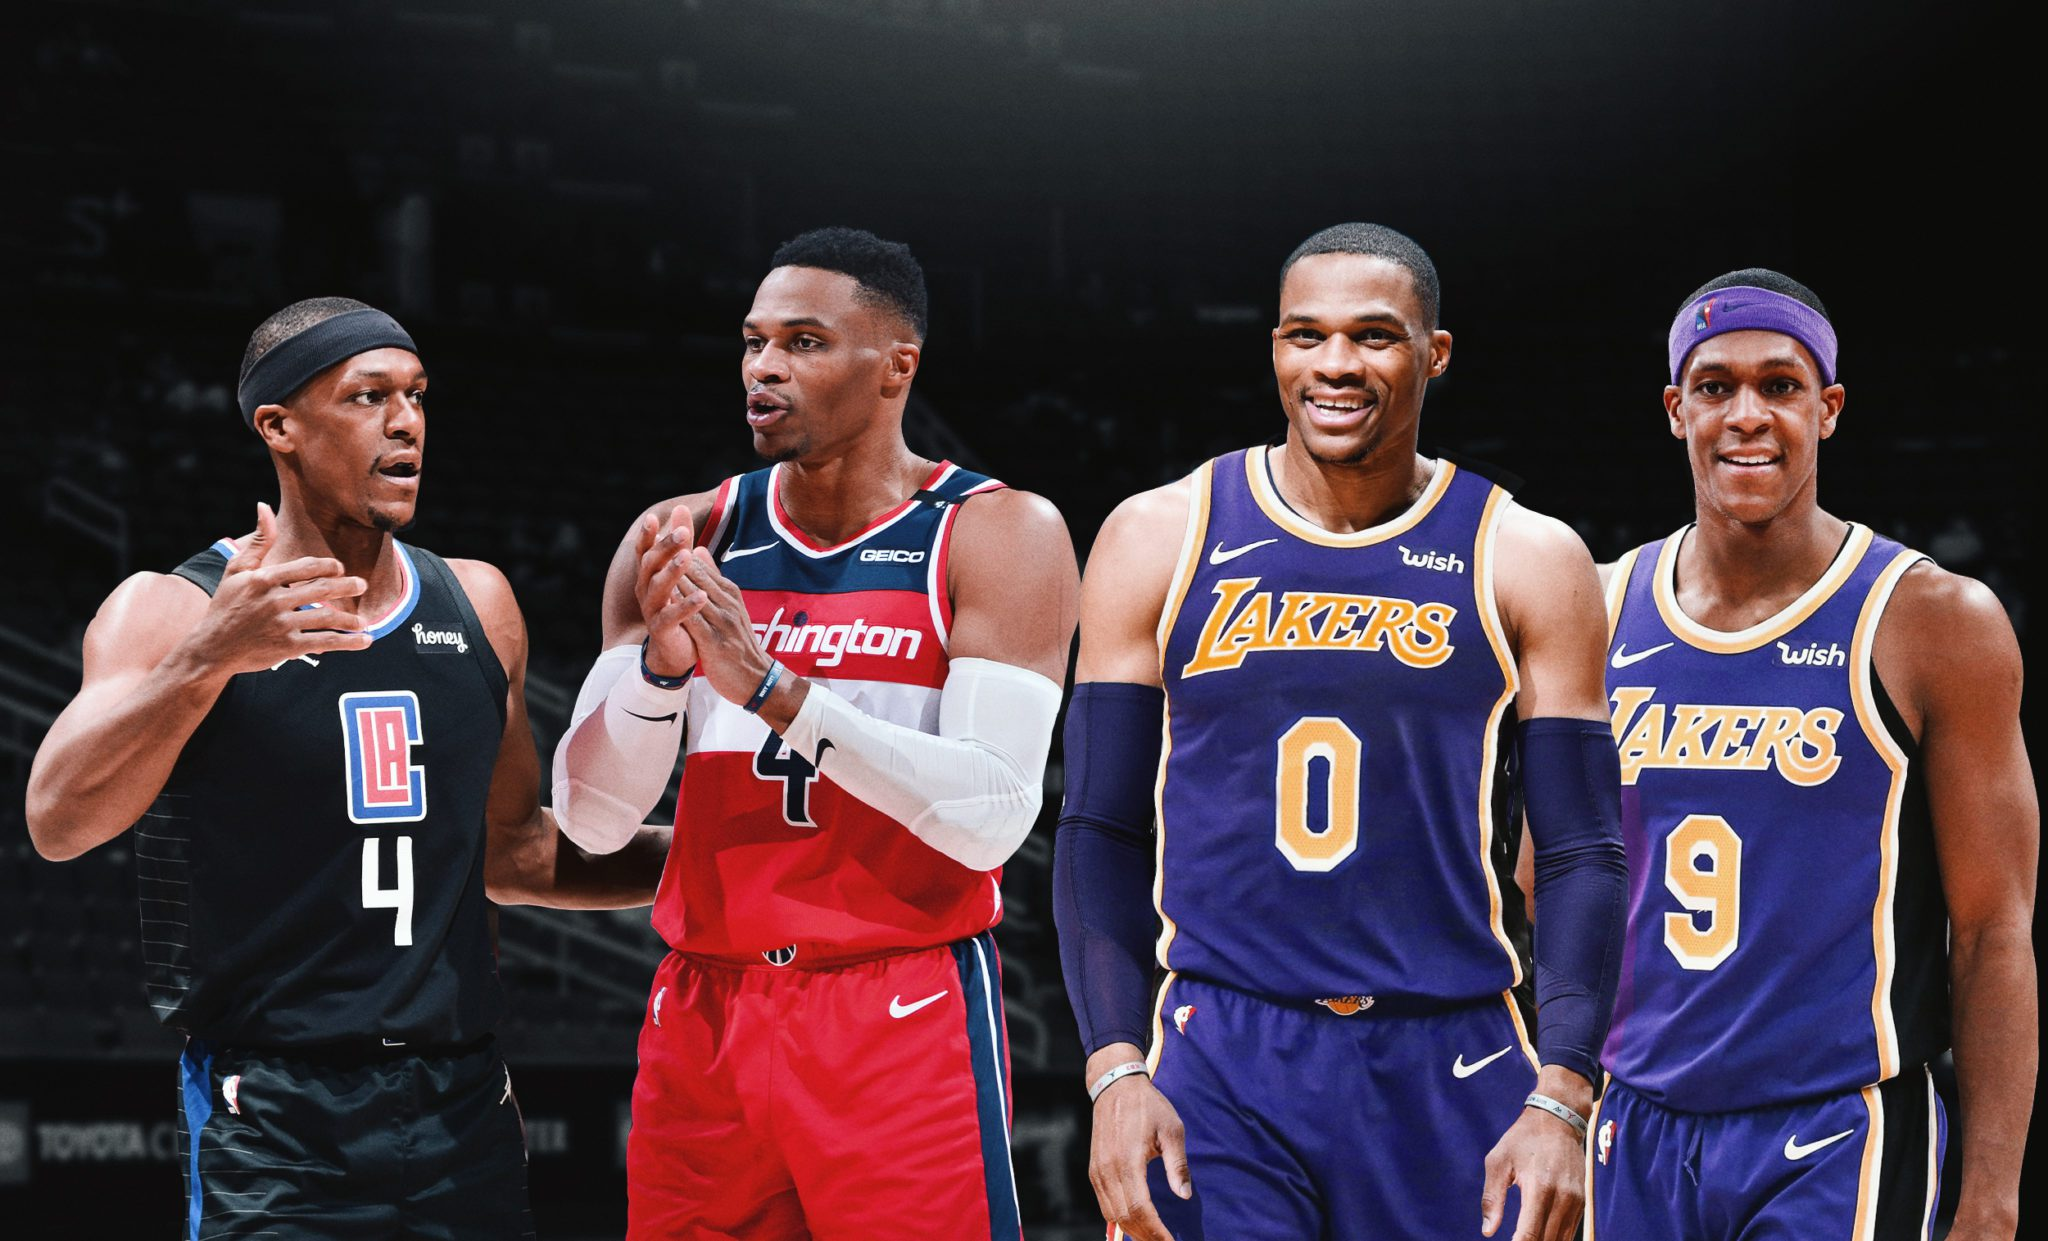 A Brief History of the Russell Westbrook-Rajon Rondo Beef